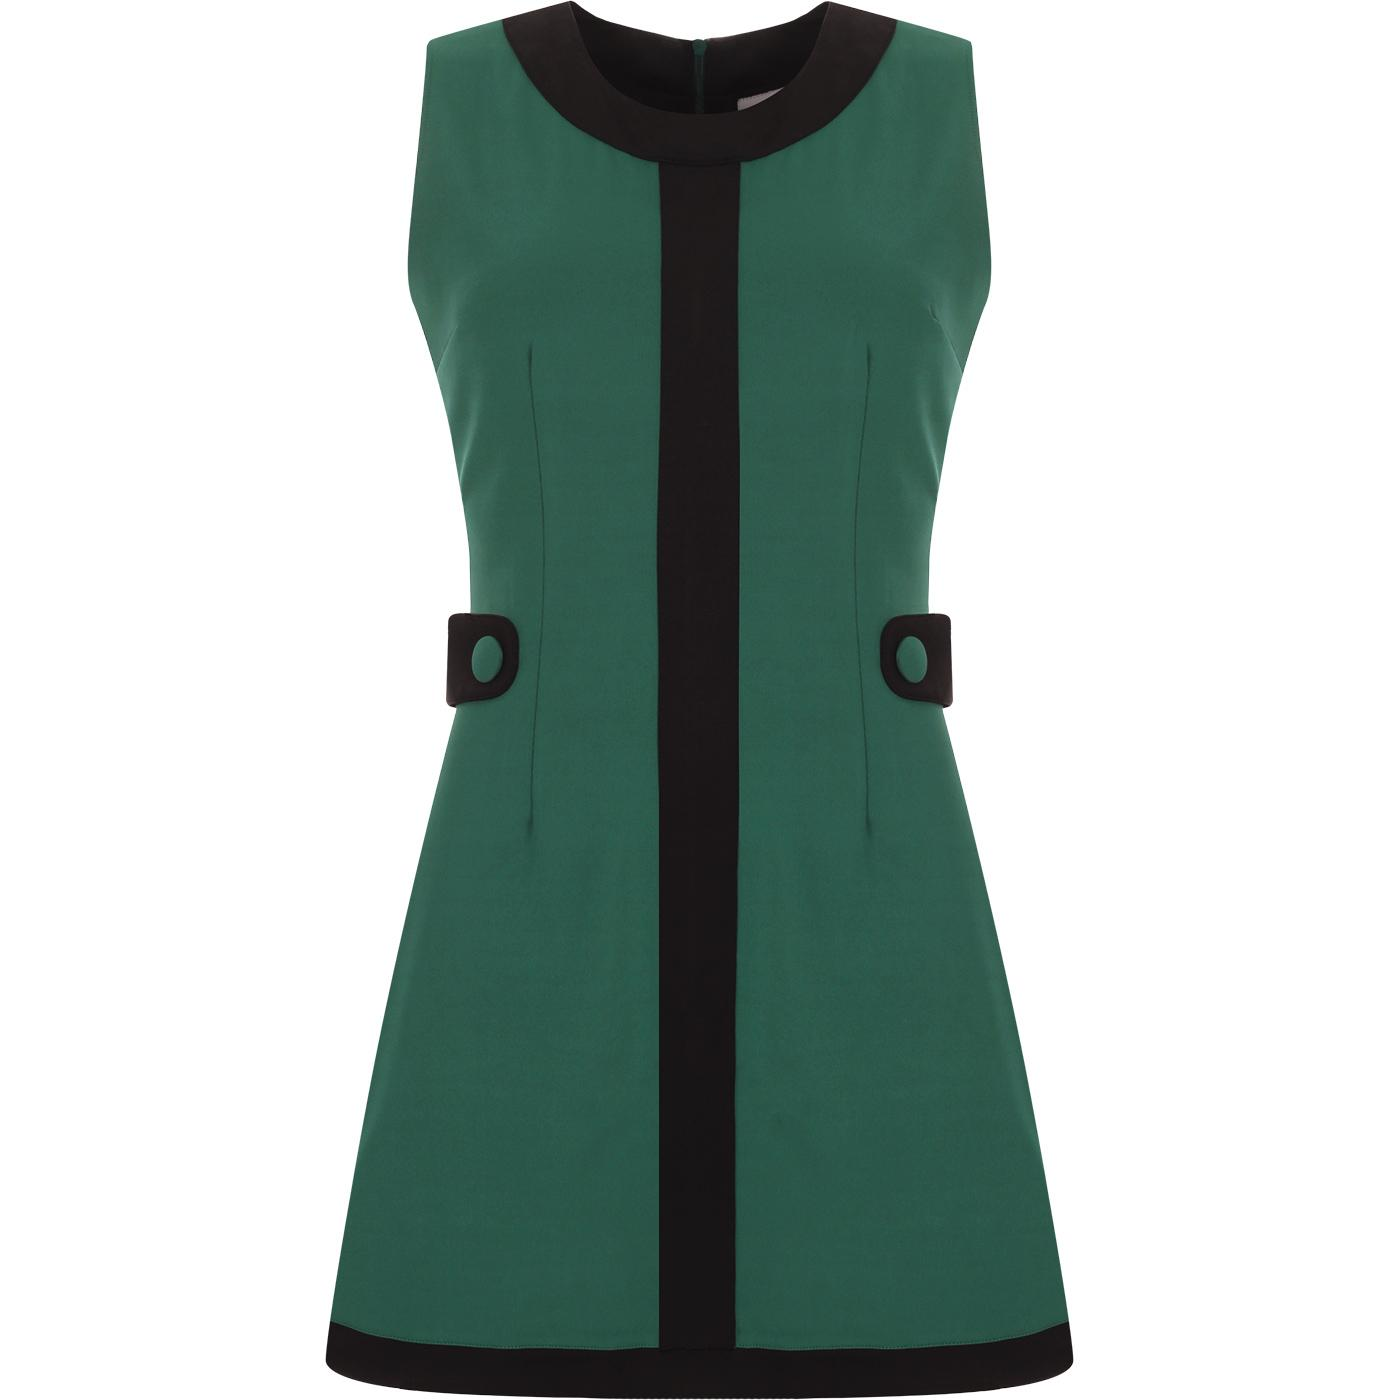 À Go-go MADCAP ENGLAND 60s Mod Mini Dress (Teal)